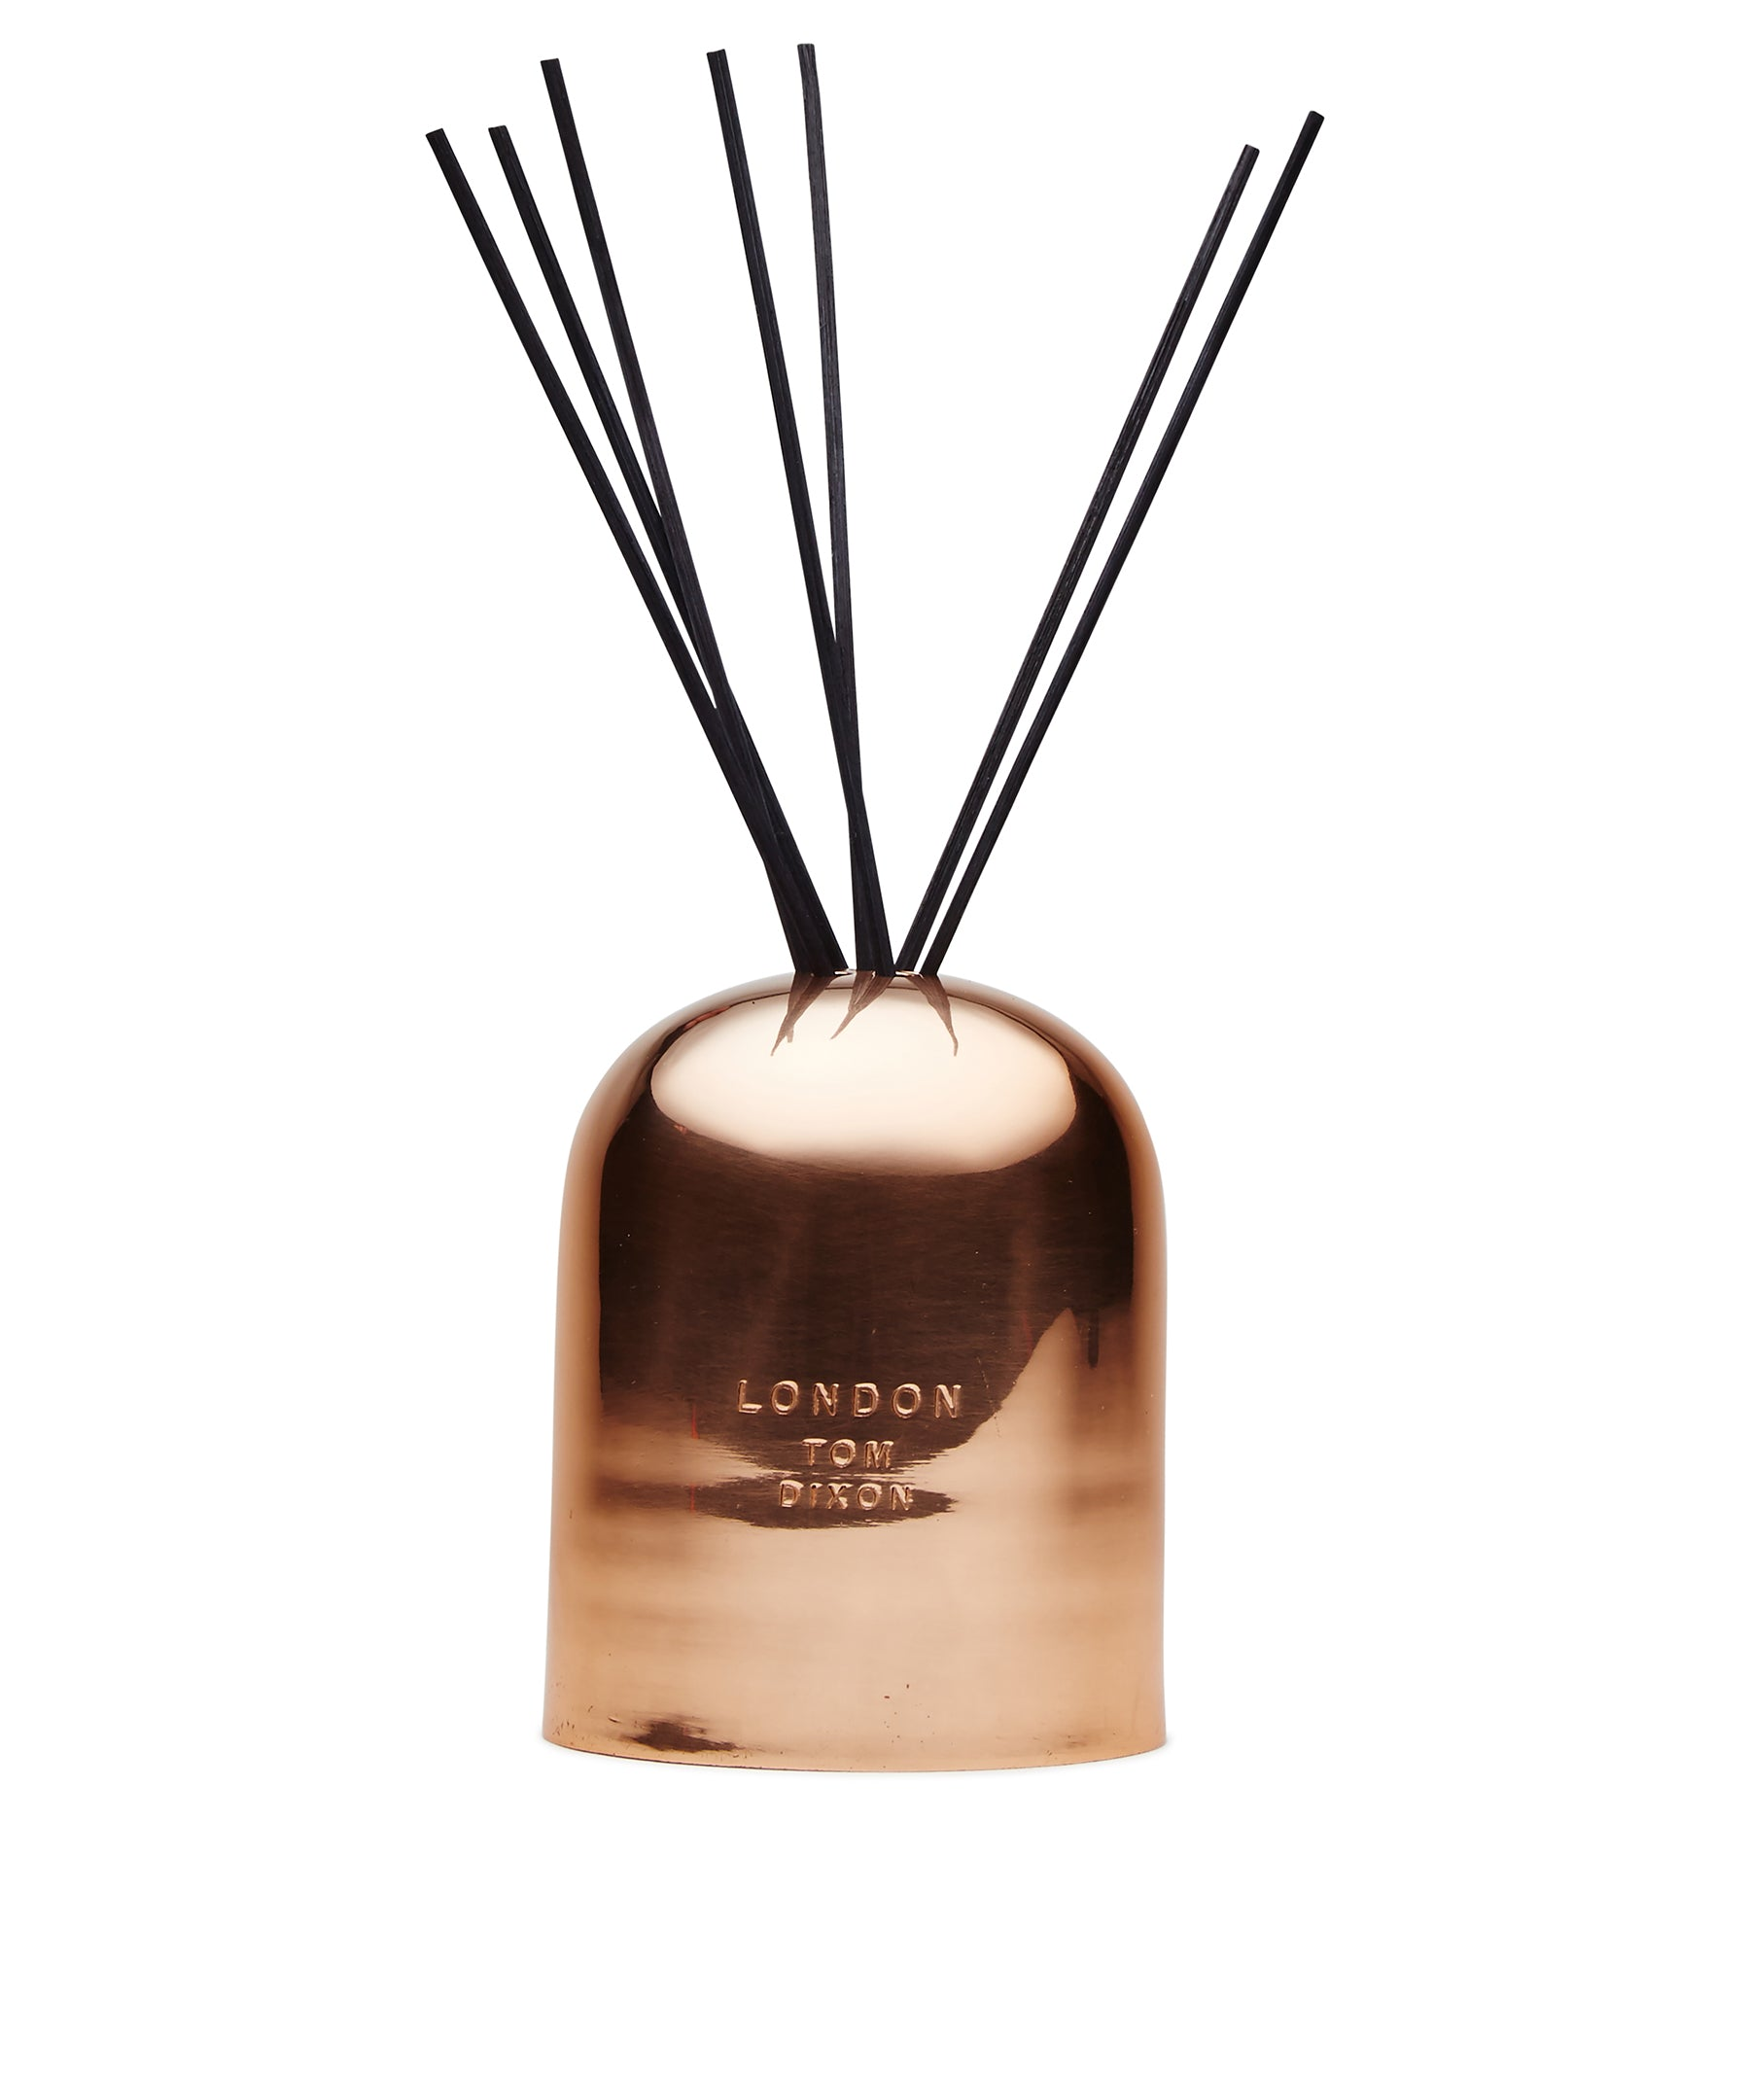 Eclectic London Diffuser by Tom Dixon